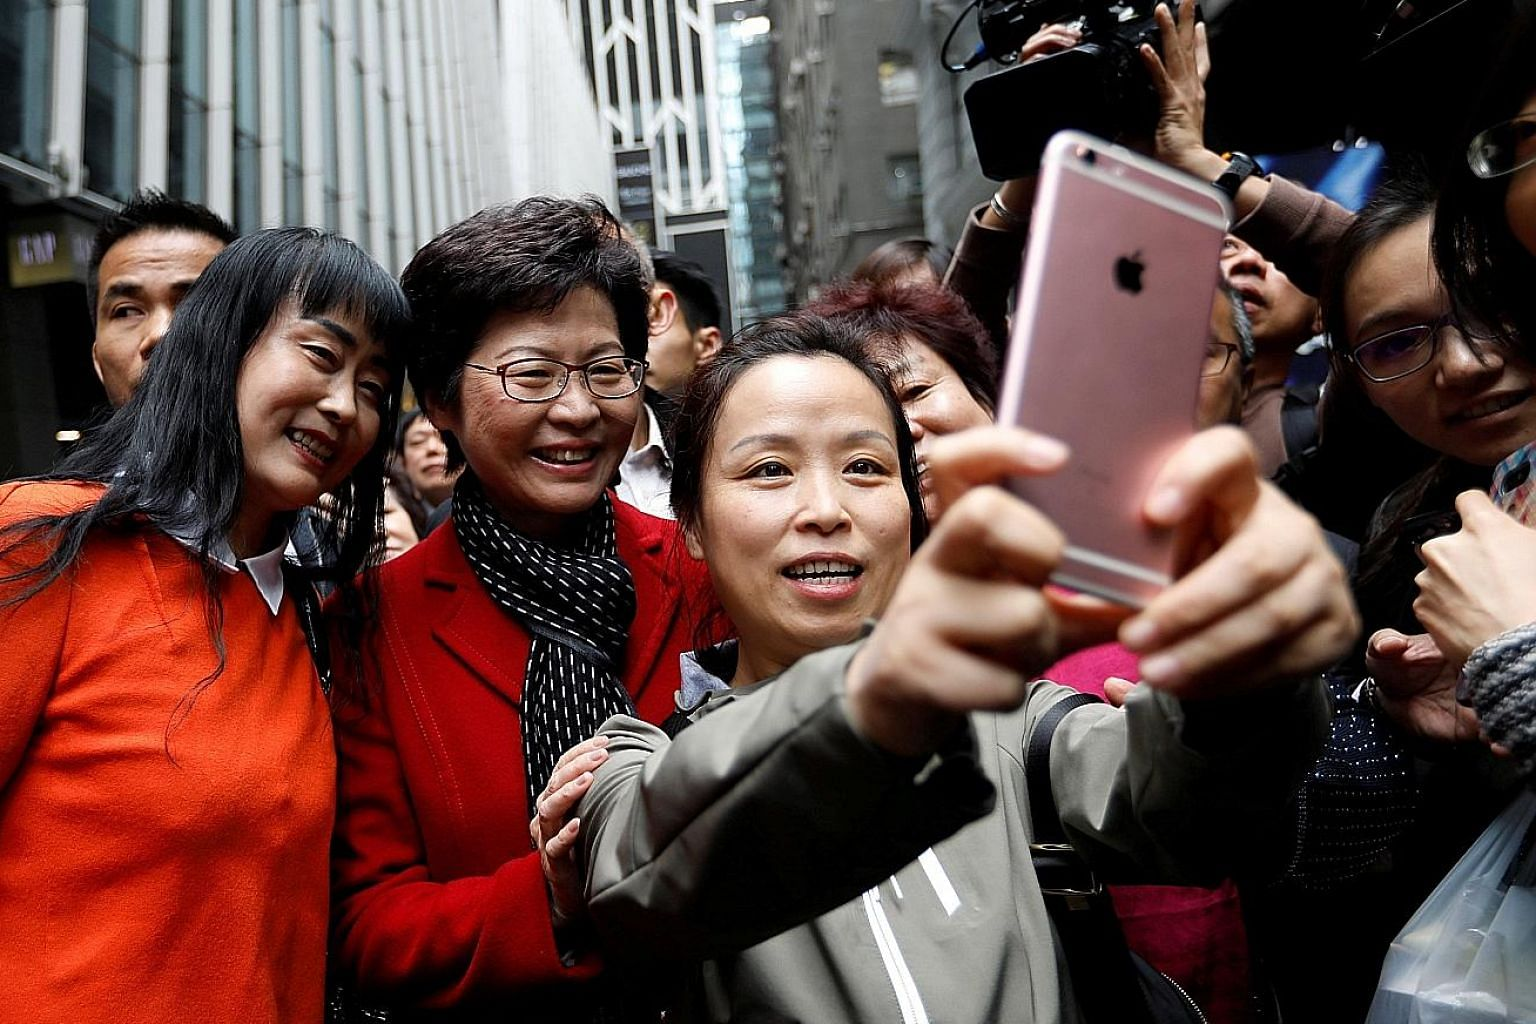 Supporters clamouring for souvenir shots with Mrs Carrie Lam, a day after she was elected as the new Chief Executive in Hong Kong on Sunday. Mrs Lam has vowed to heal political divisions but the decision to prosecute nine pro-democracy activists has